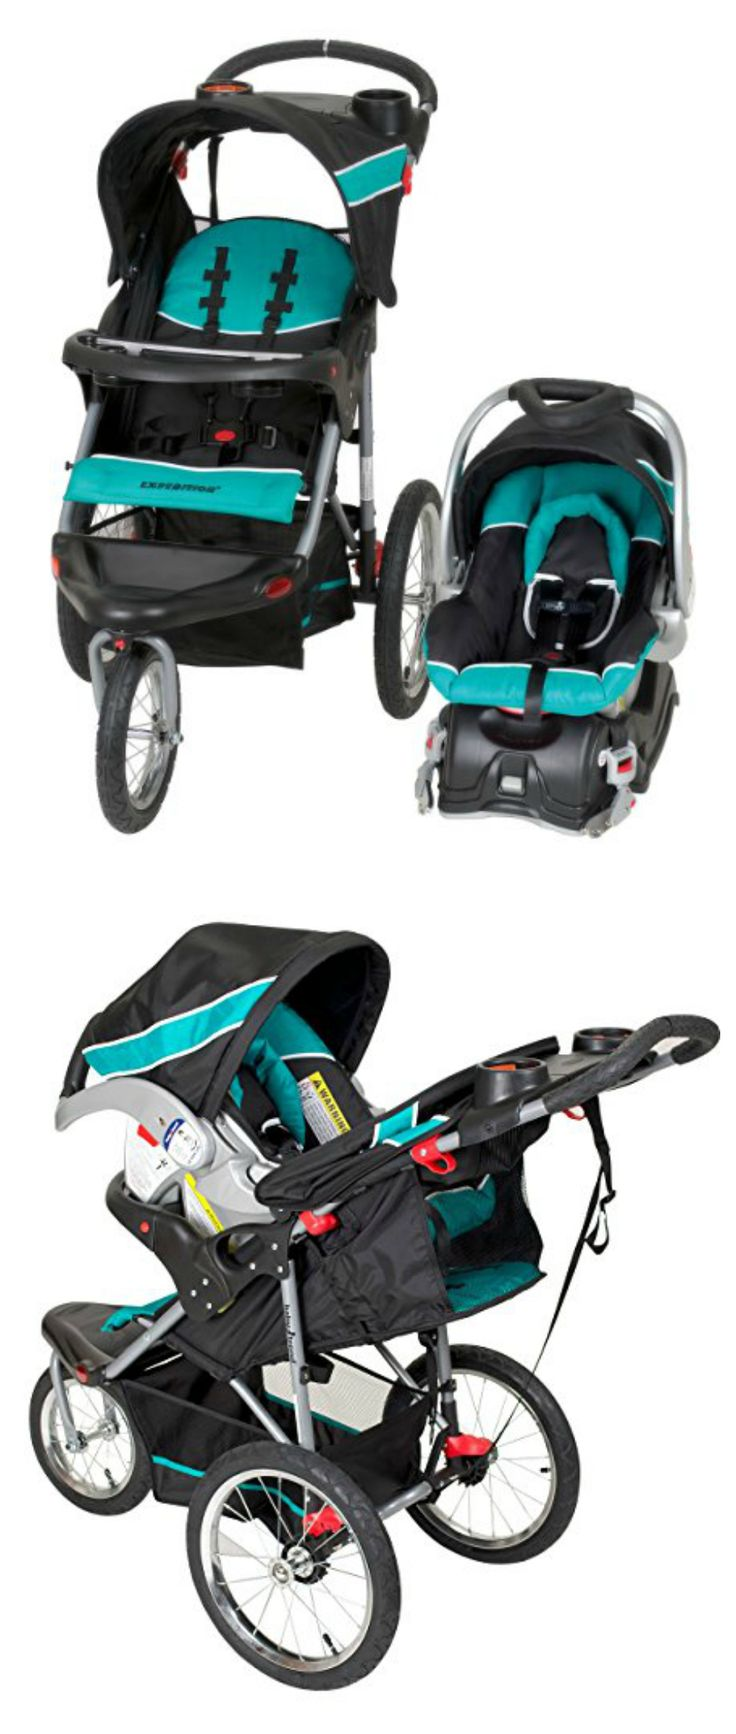 The Baby Trend Expedition Jogger is on our list of the